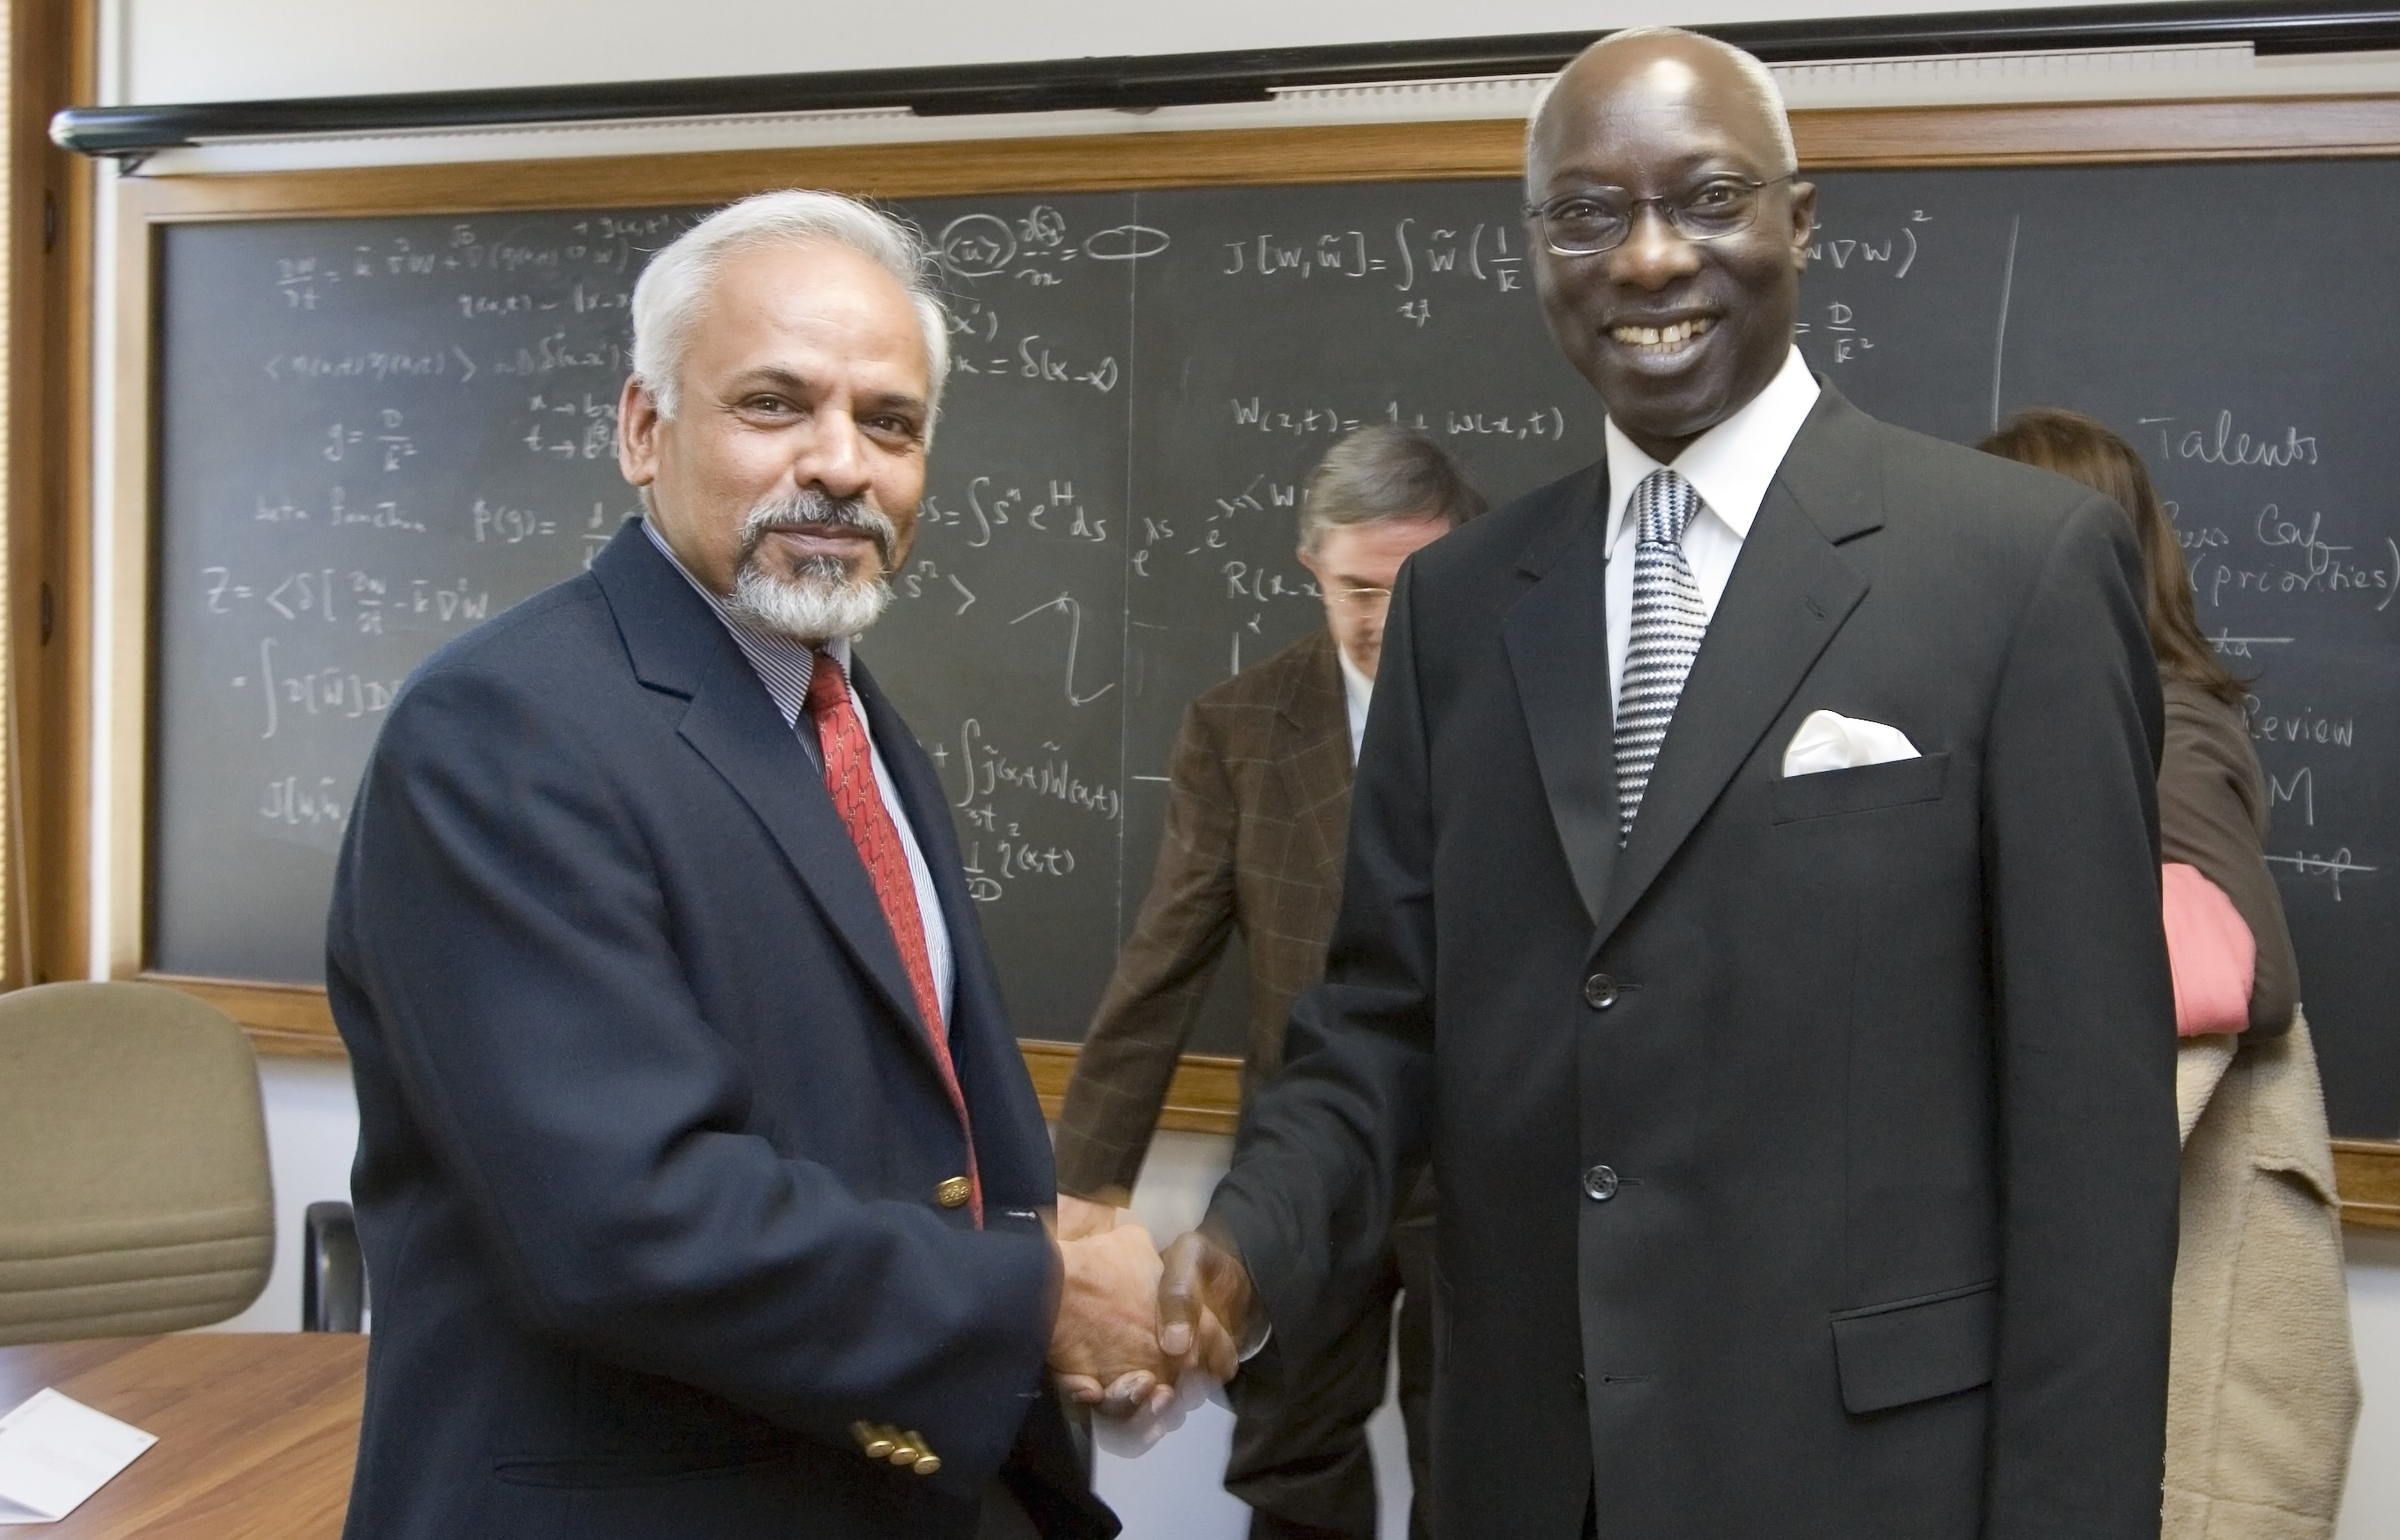 K.R. Sreenivasan and A. Dieng